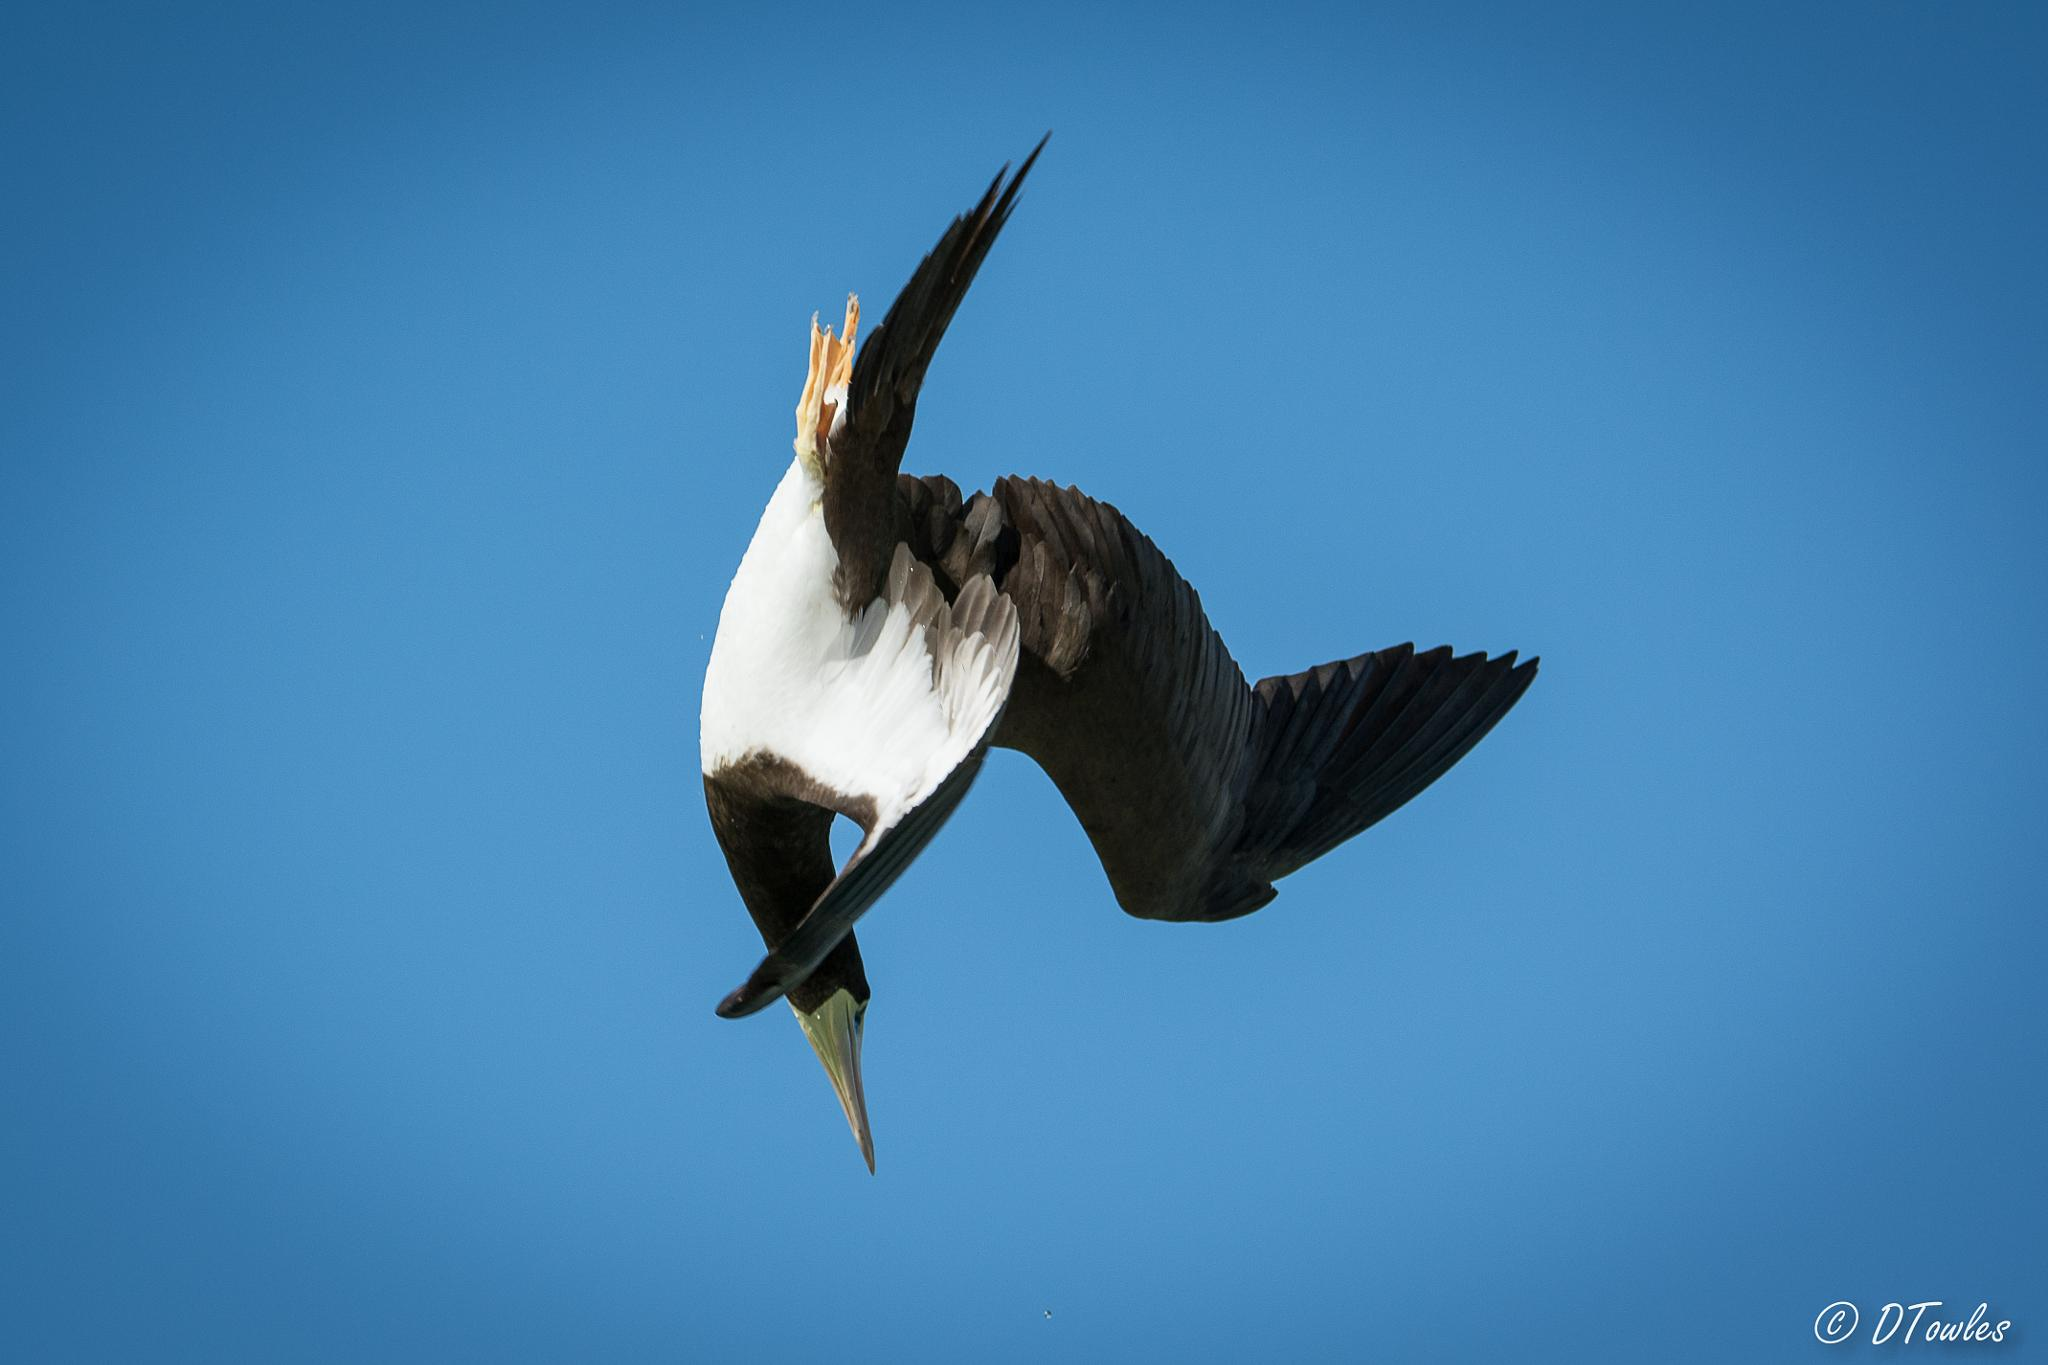 Swan Dive - well sort of by CapturedImages